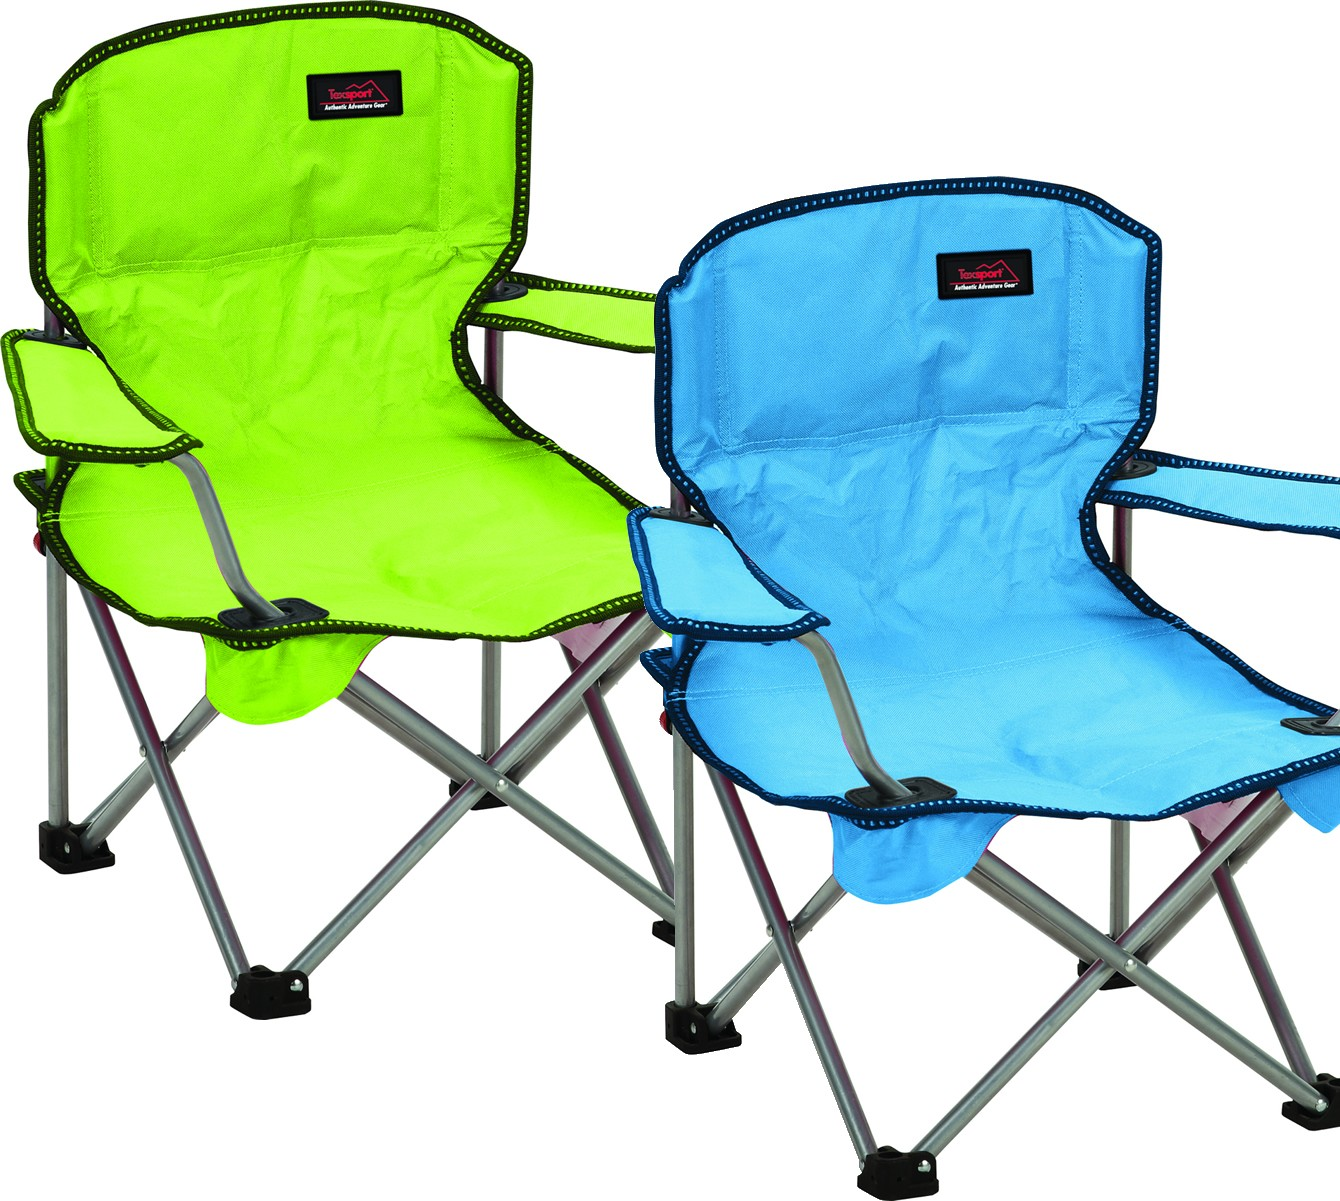 Bright Kids Chair (Case pack of 6)